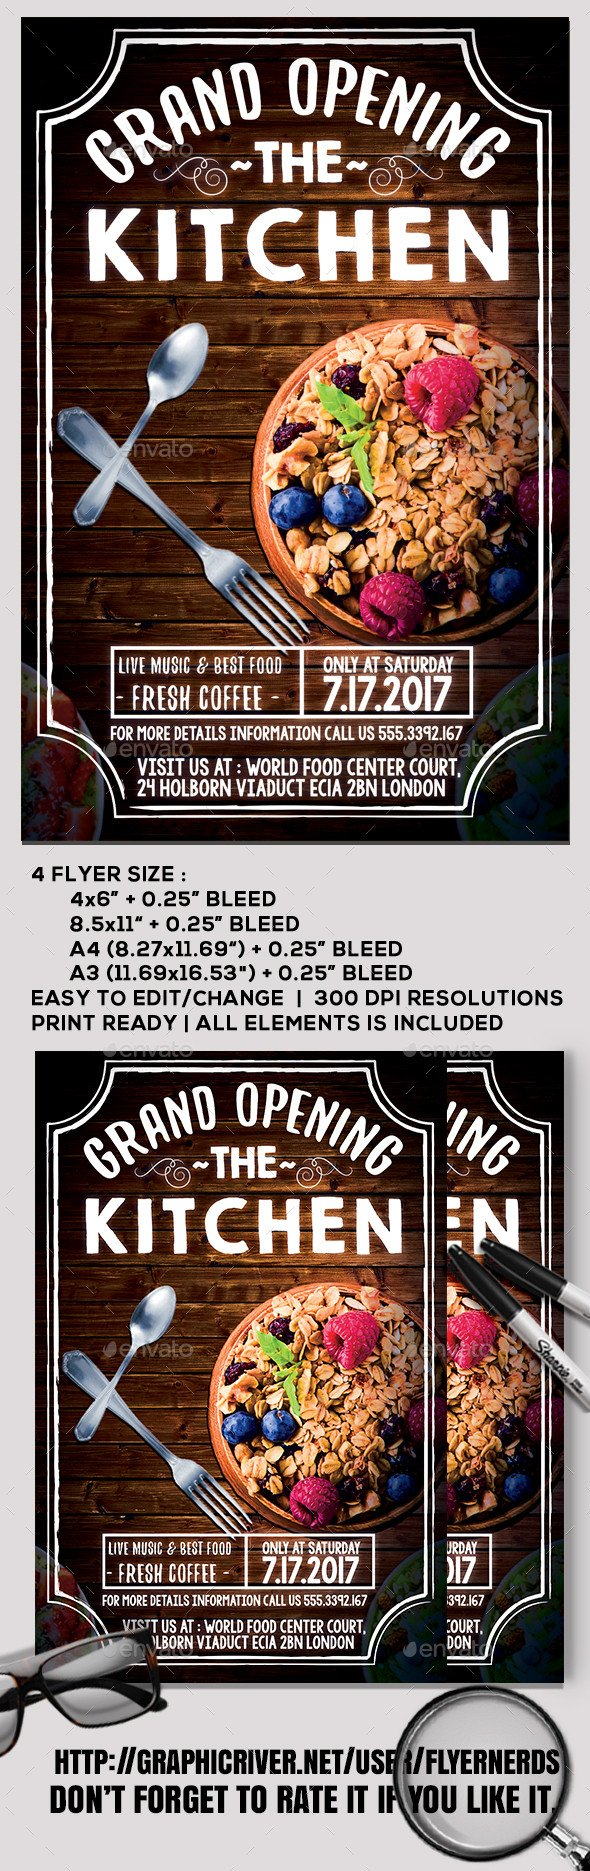 Restaurant Grand Opening Flyer Restaurant Grand Opening Flyer by Flyernerds